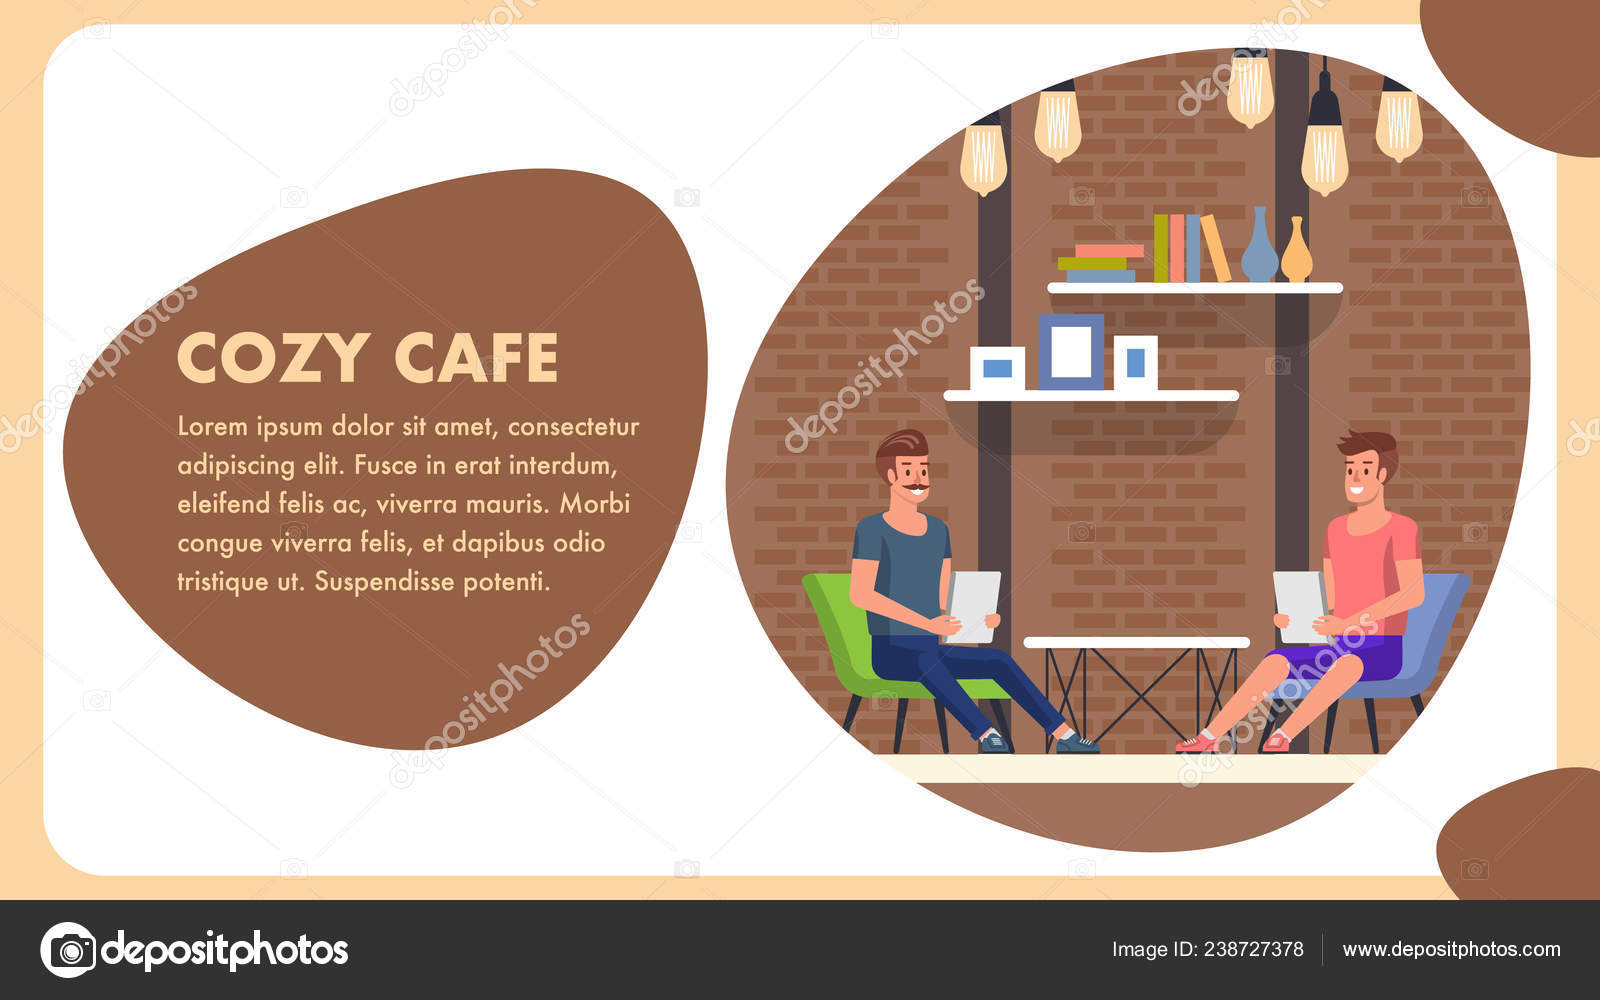 Cozy Cafe Cartoon Banner Trendy Comfort Decor Stock Vector C Pavelvinnik 238727378